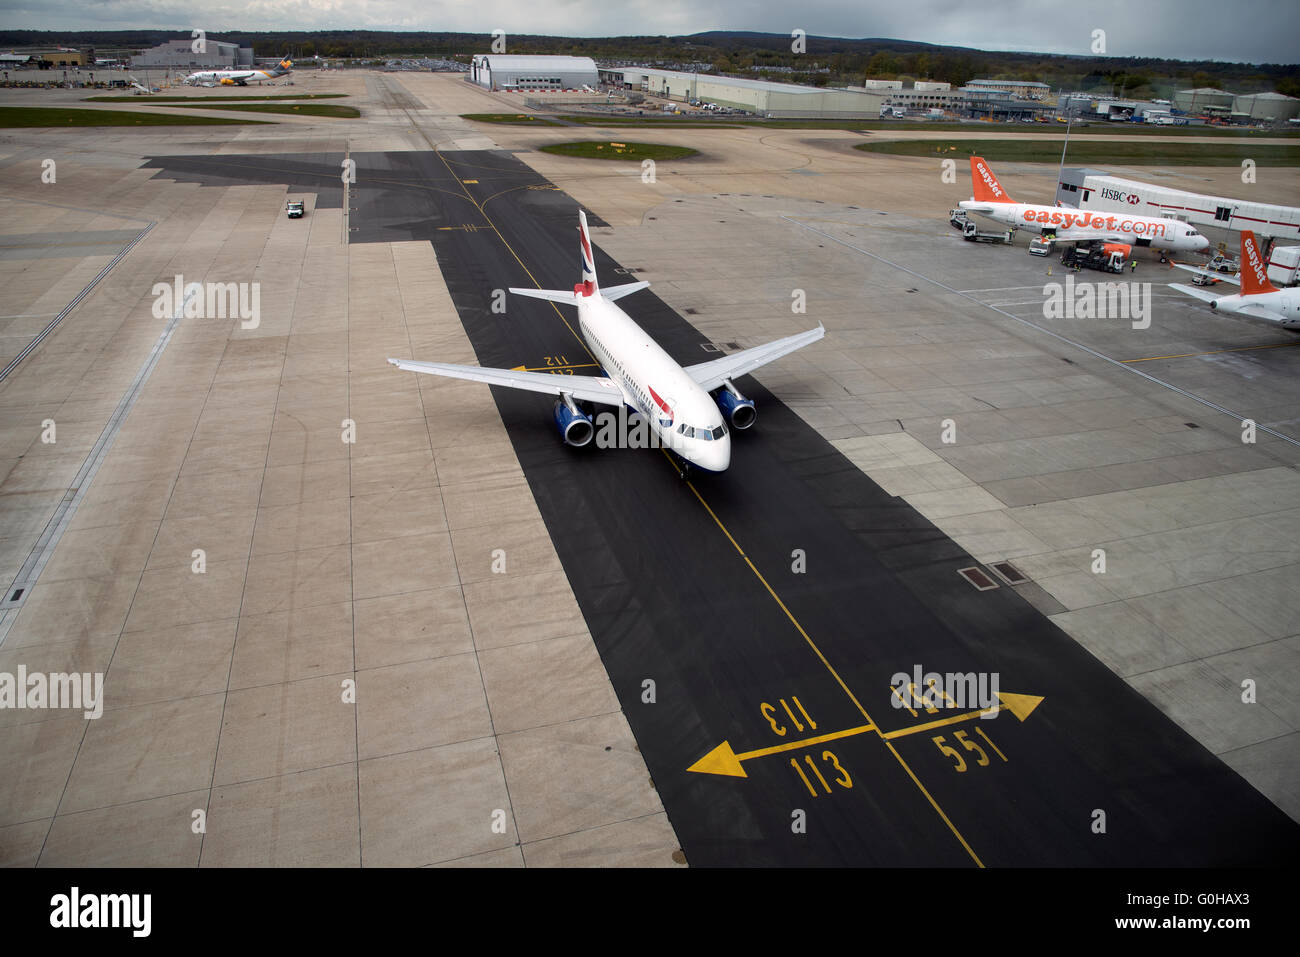 A British Airways passenger jet using a new tarmac taxiway at London Gatwick airport south of London England UK - Stock Image